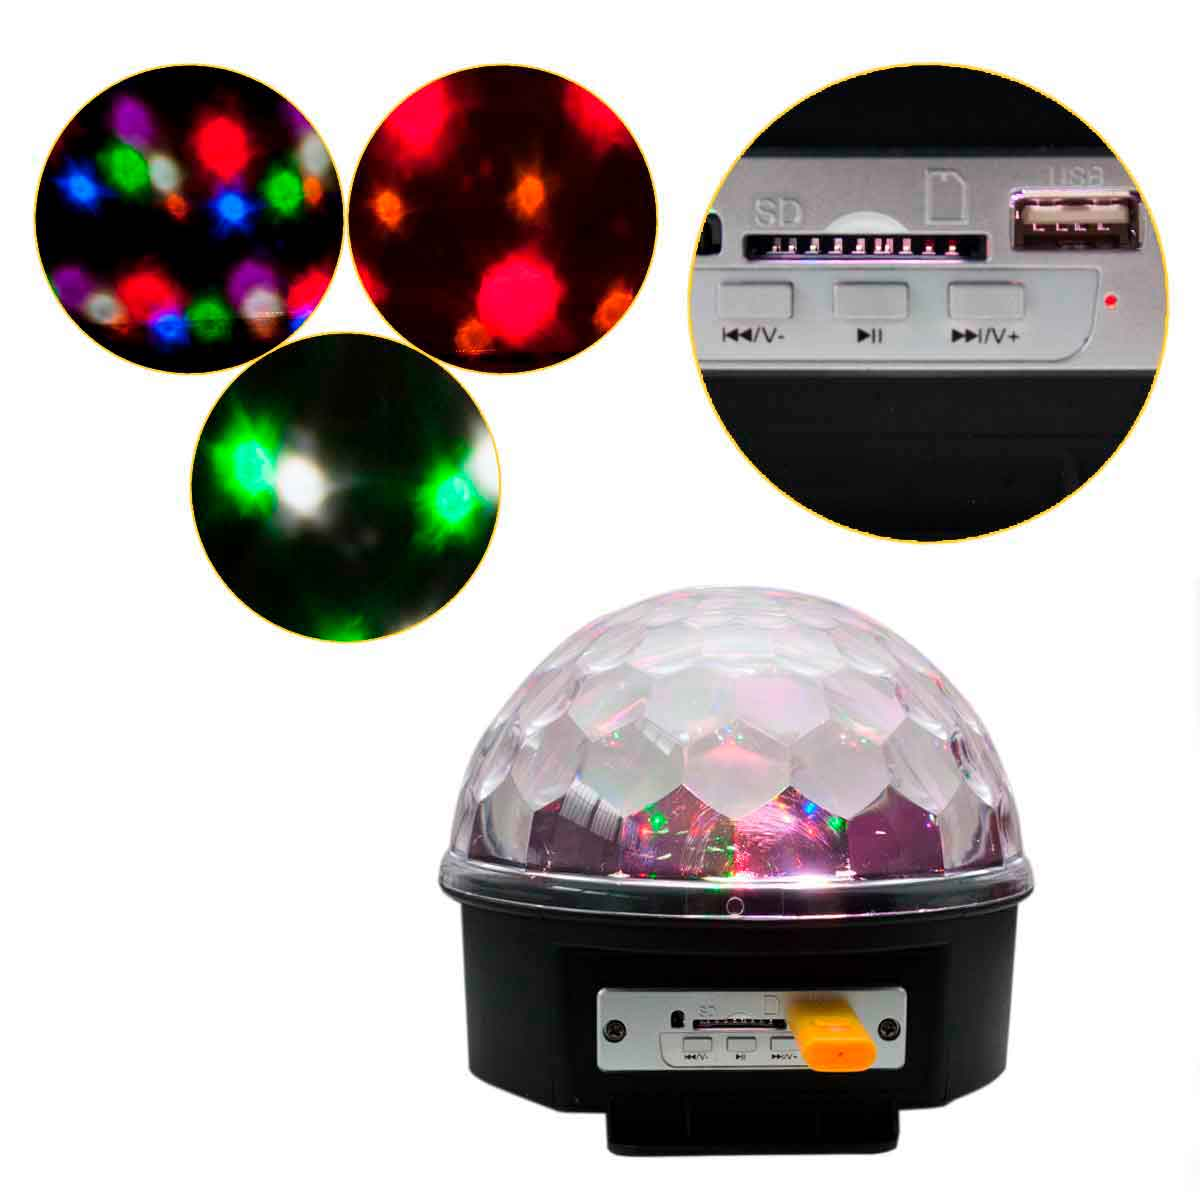 Globo Bola Maluca Led Magic De Cristal Rgb 30w Festas